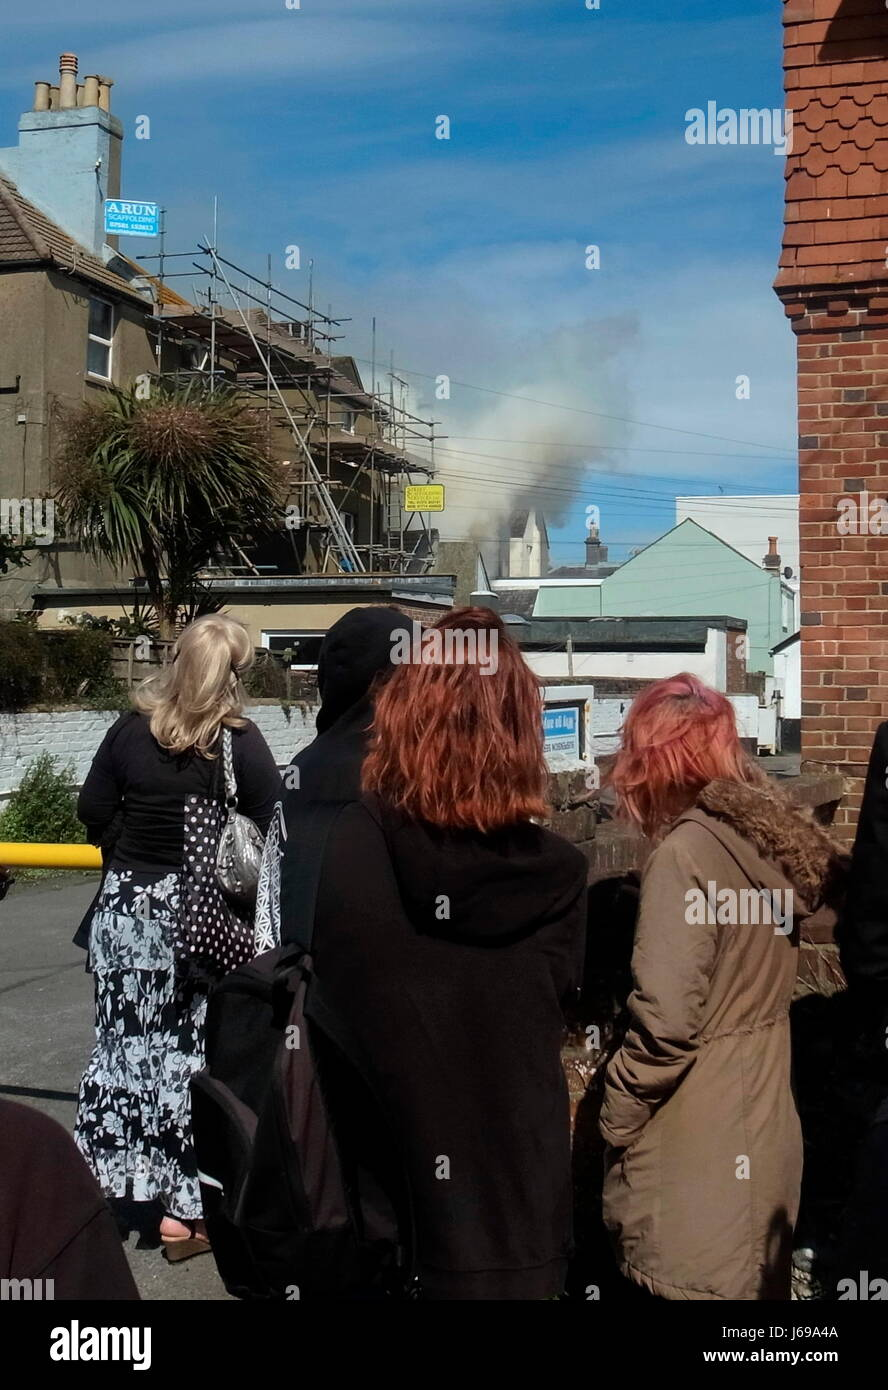 Worthing, England. 20th May, 2017. - Firemen tackle flat fire - Spectators watch West Sussex Fire & Rescue Service - Stock Image